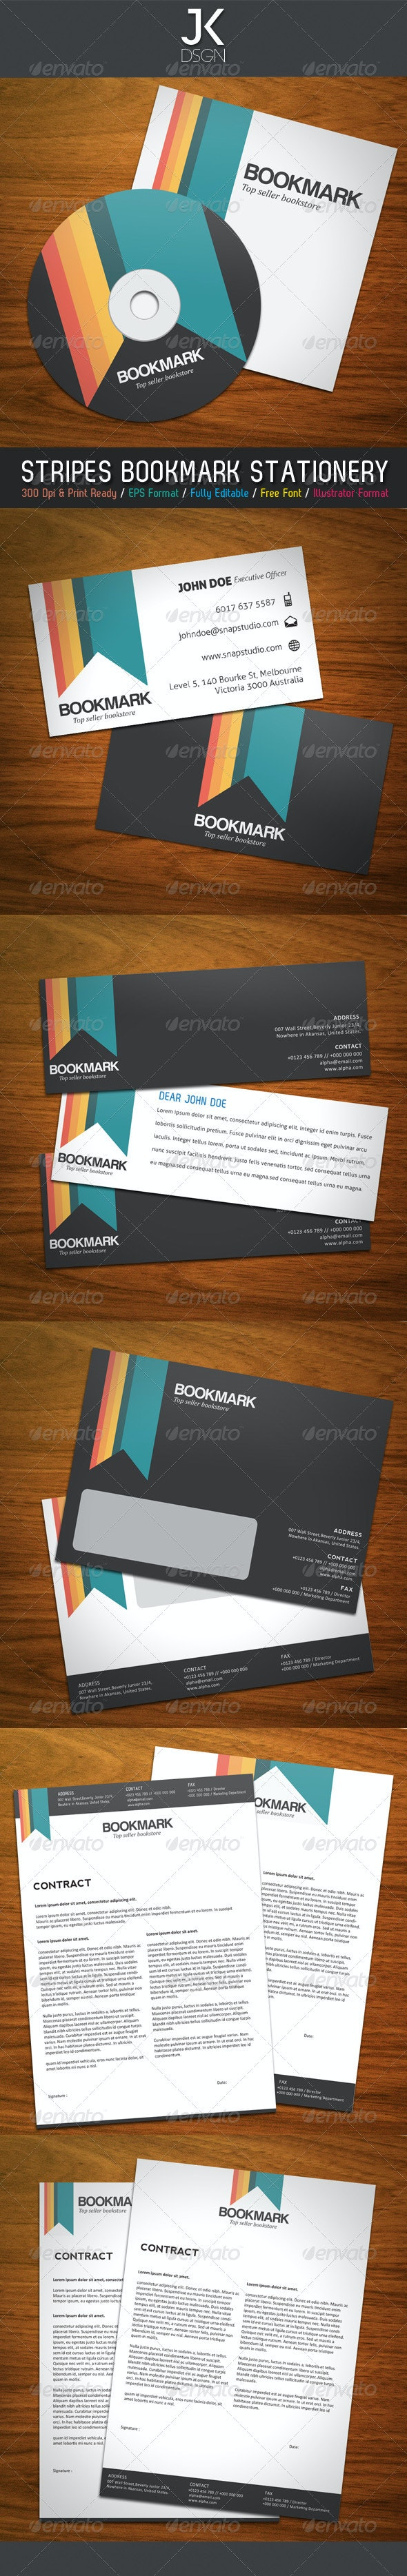 JK Bookmark Stationery - Stationery Print Templates